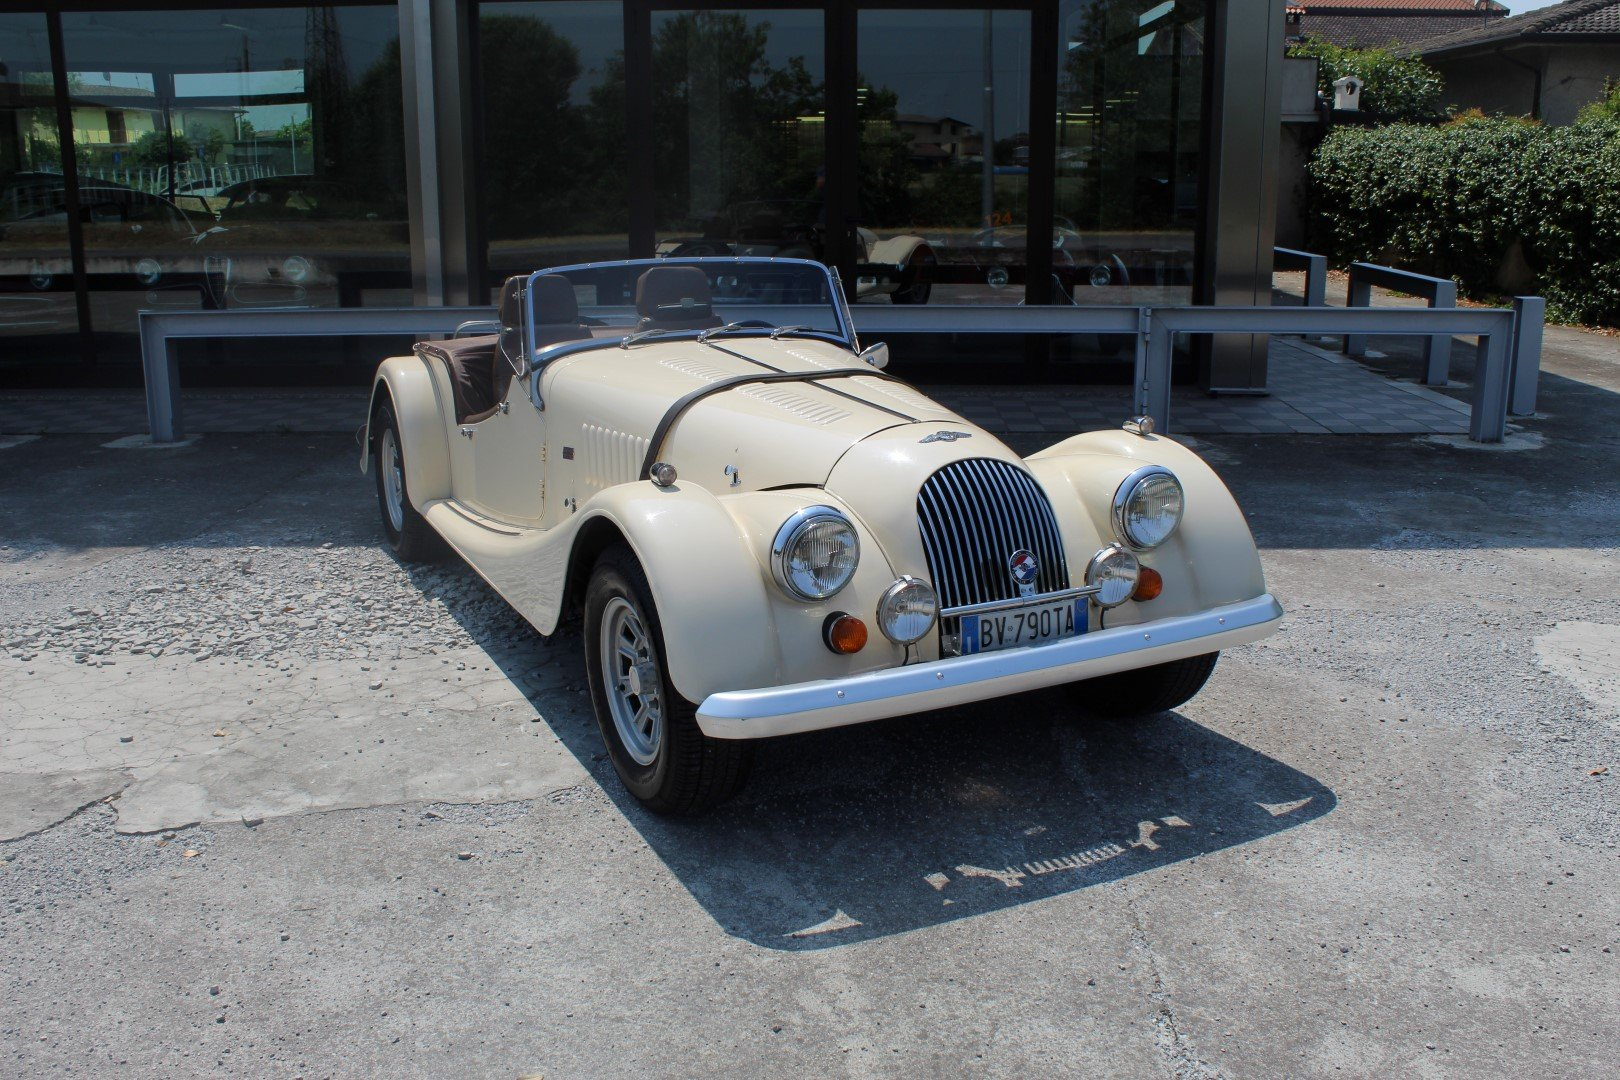 1979 Morgan plus 8 lhd oldtimer For Sale (picture 1 of 6)